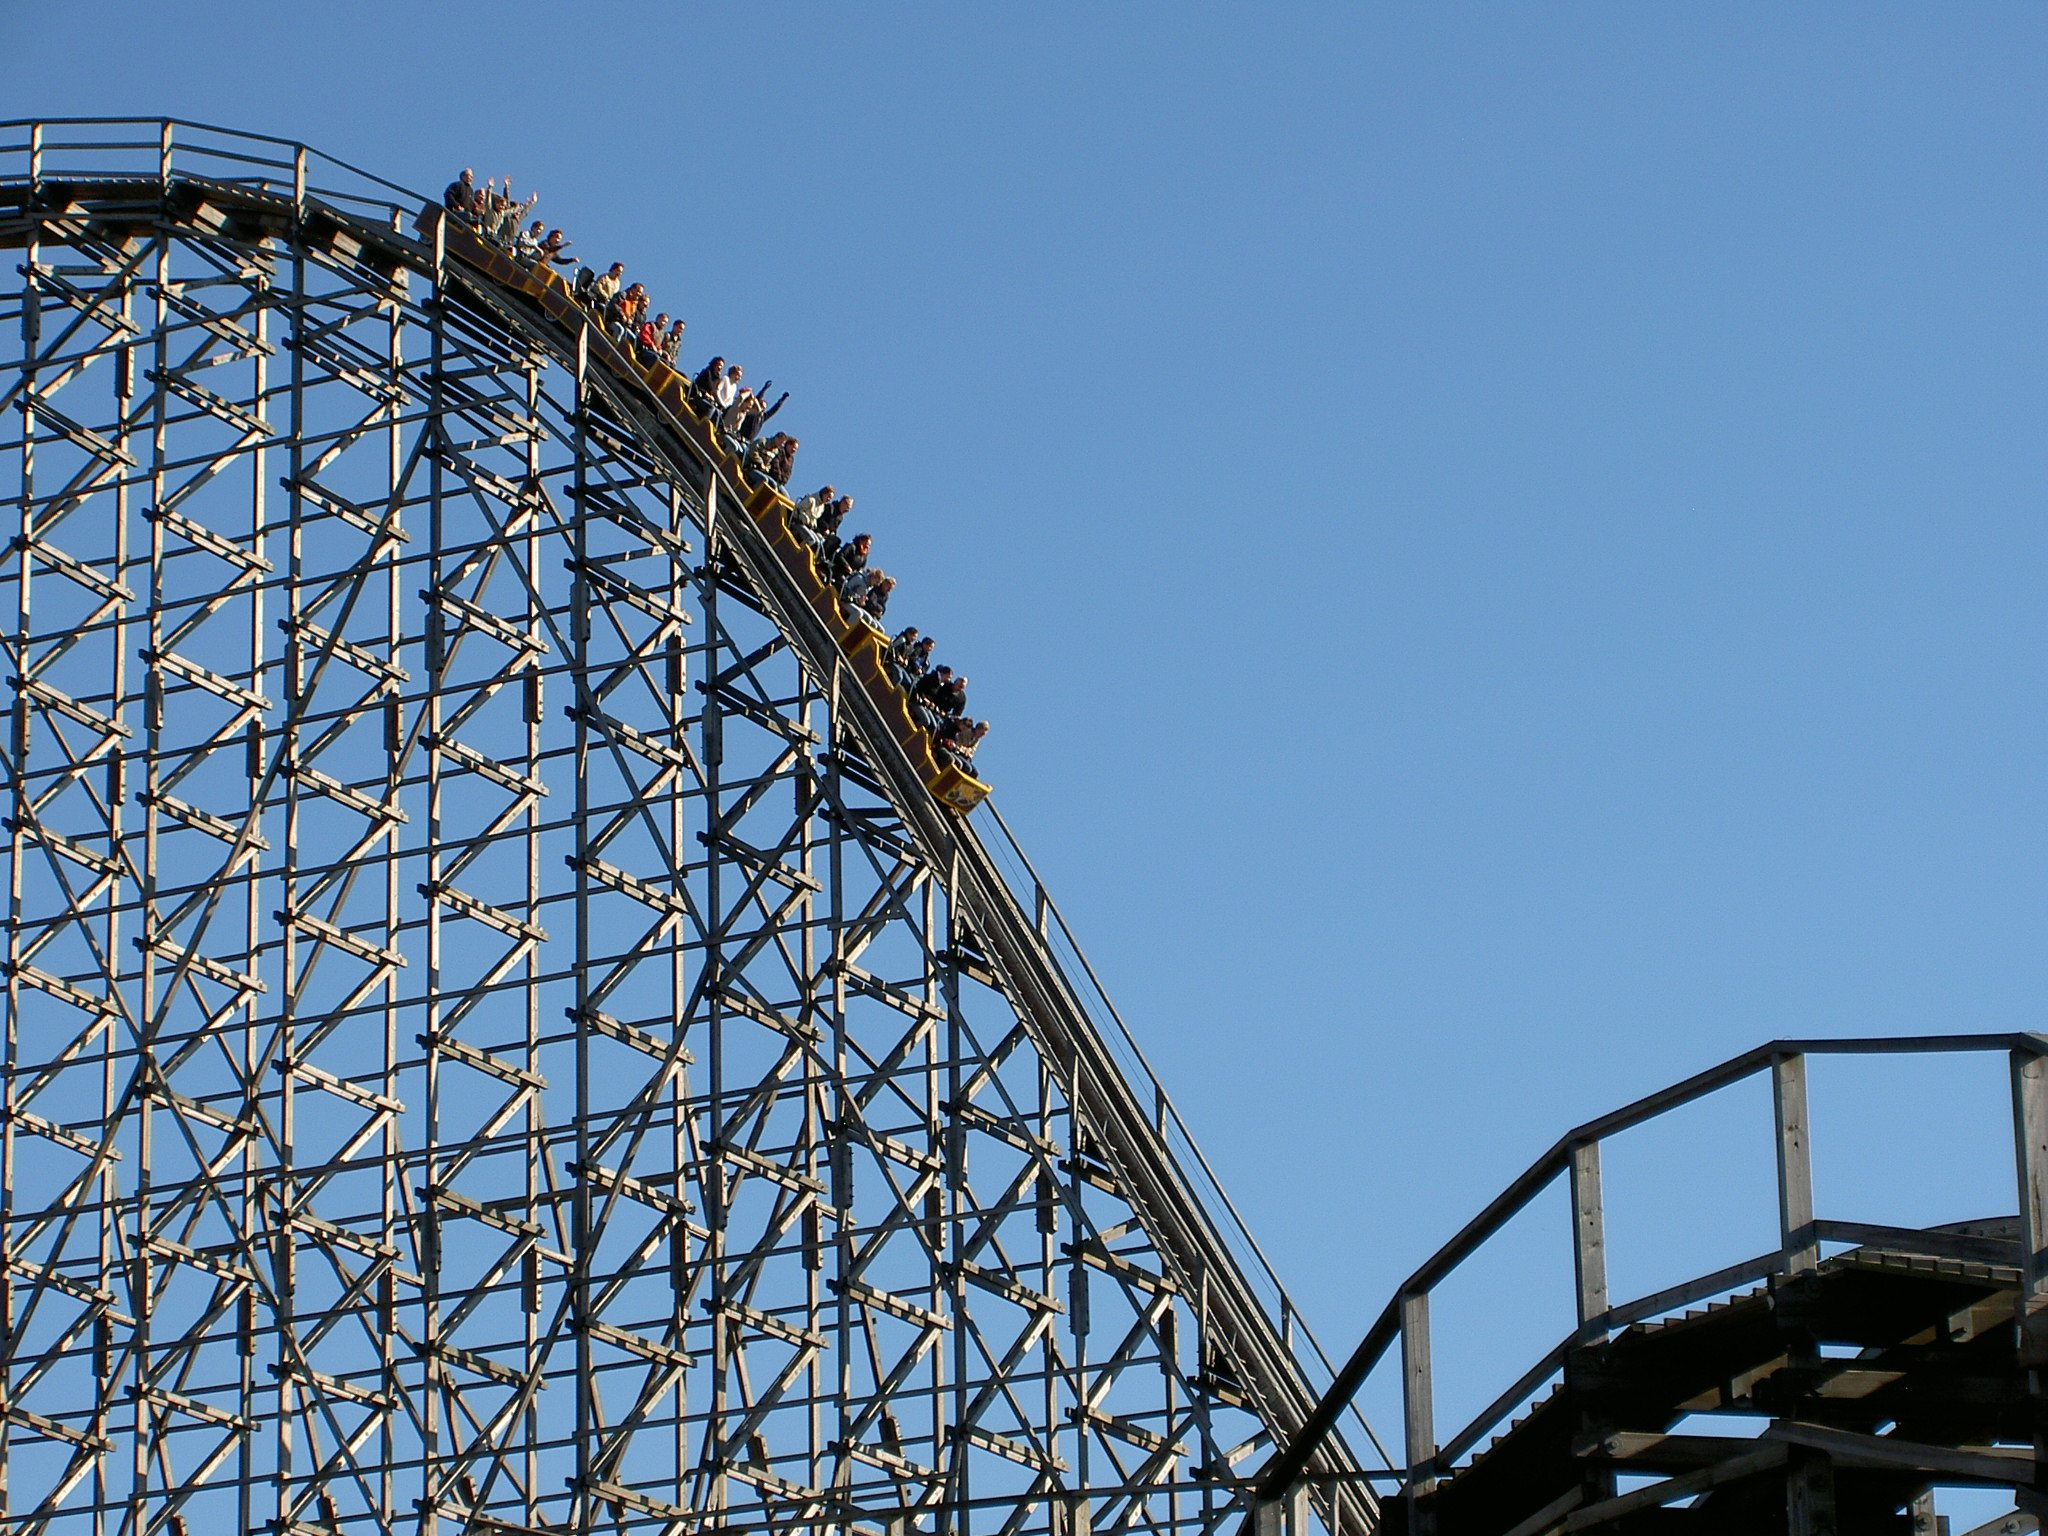 Photo of people on a rollercoaster. | Photo: Pexel